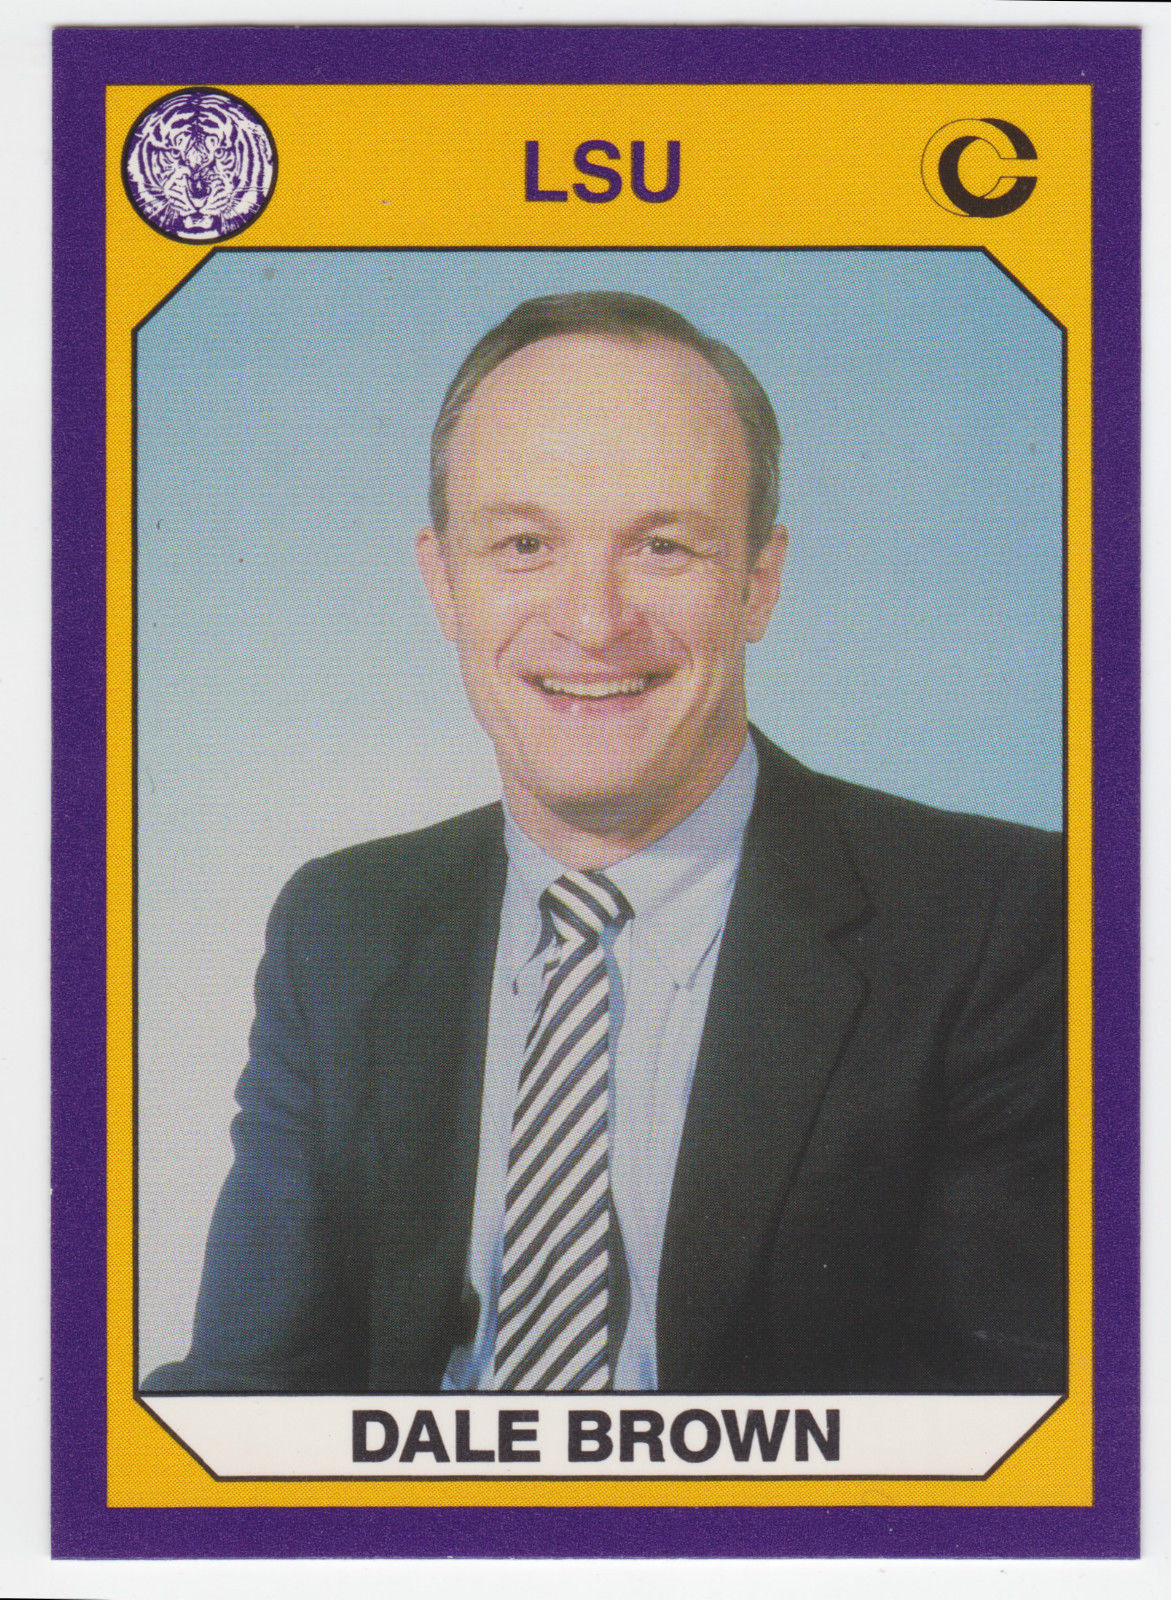 1990 Collegiate Collection LSU Basketball Coach DALE BROWN #11 -Hall Of Fame-